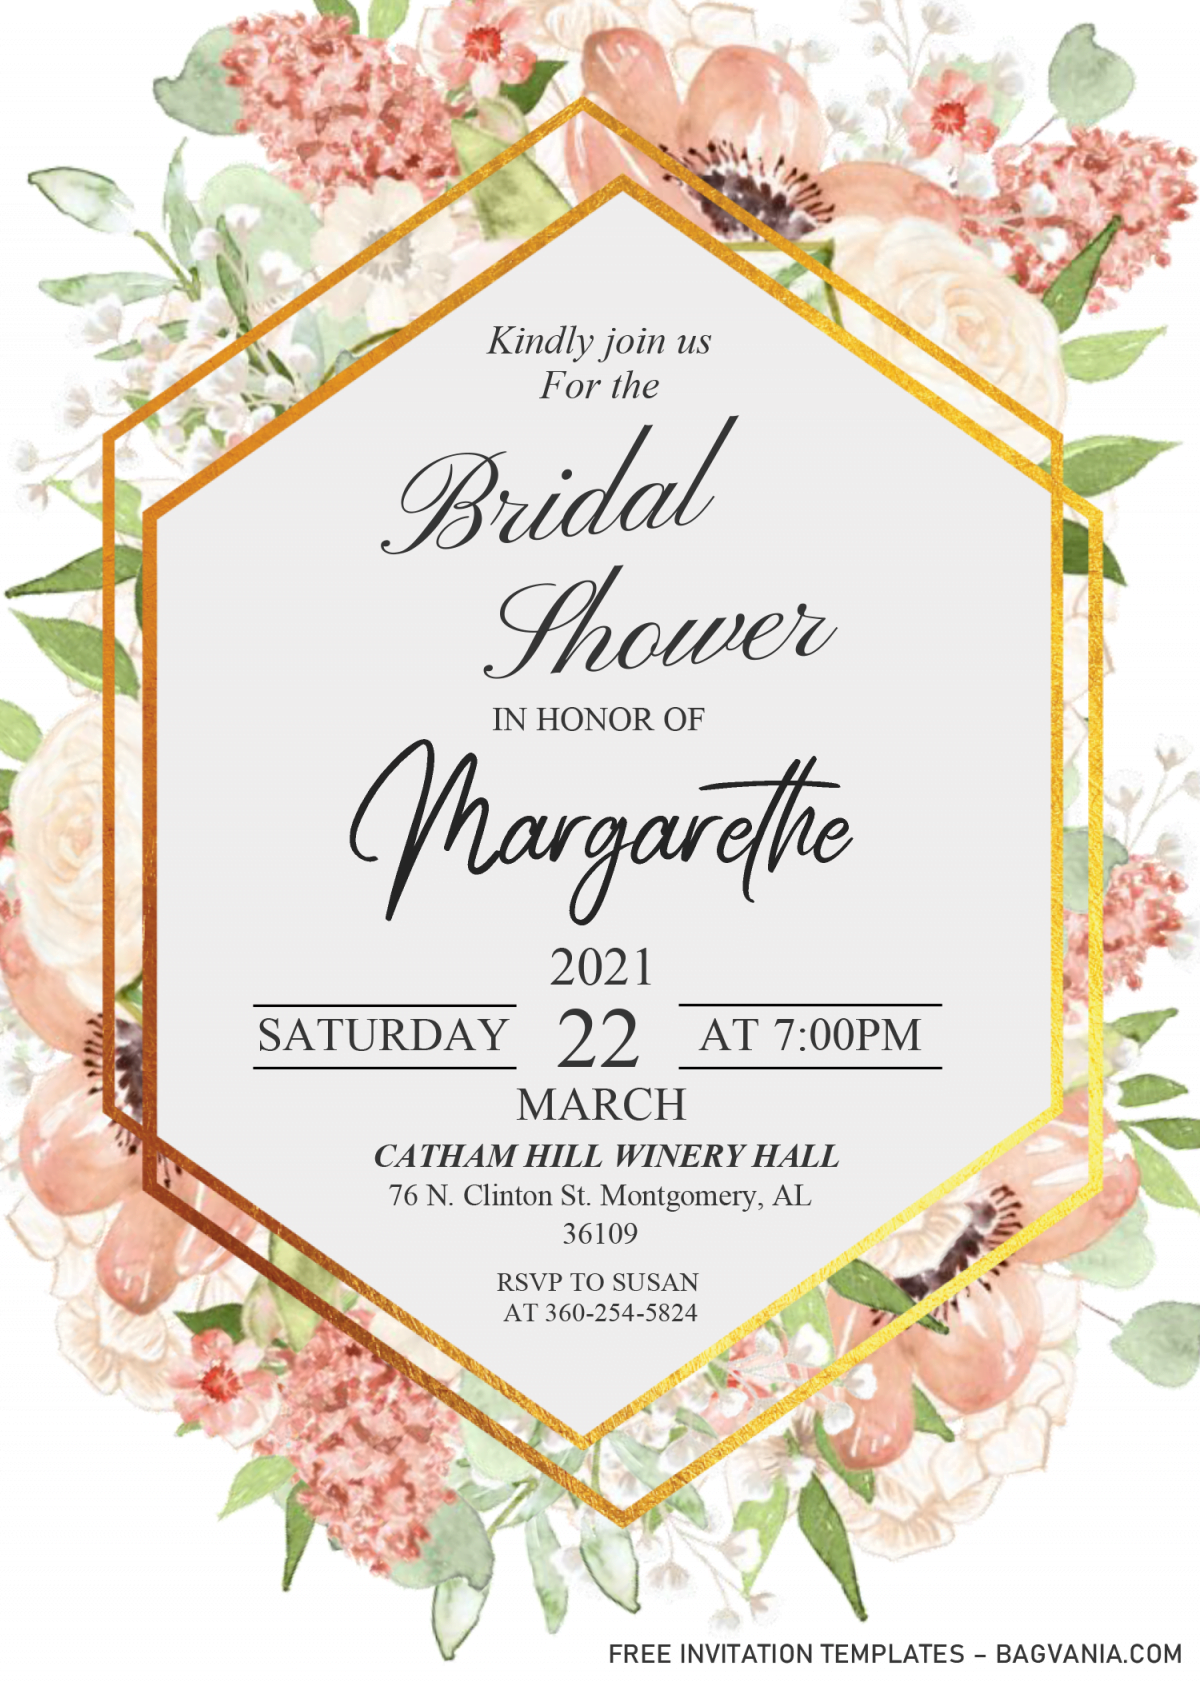 Modern Floral Invitation Templates - Editable .DOCX and has gold frame